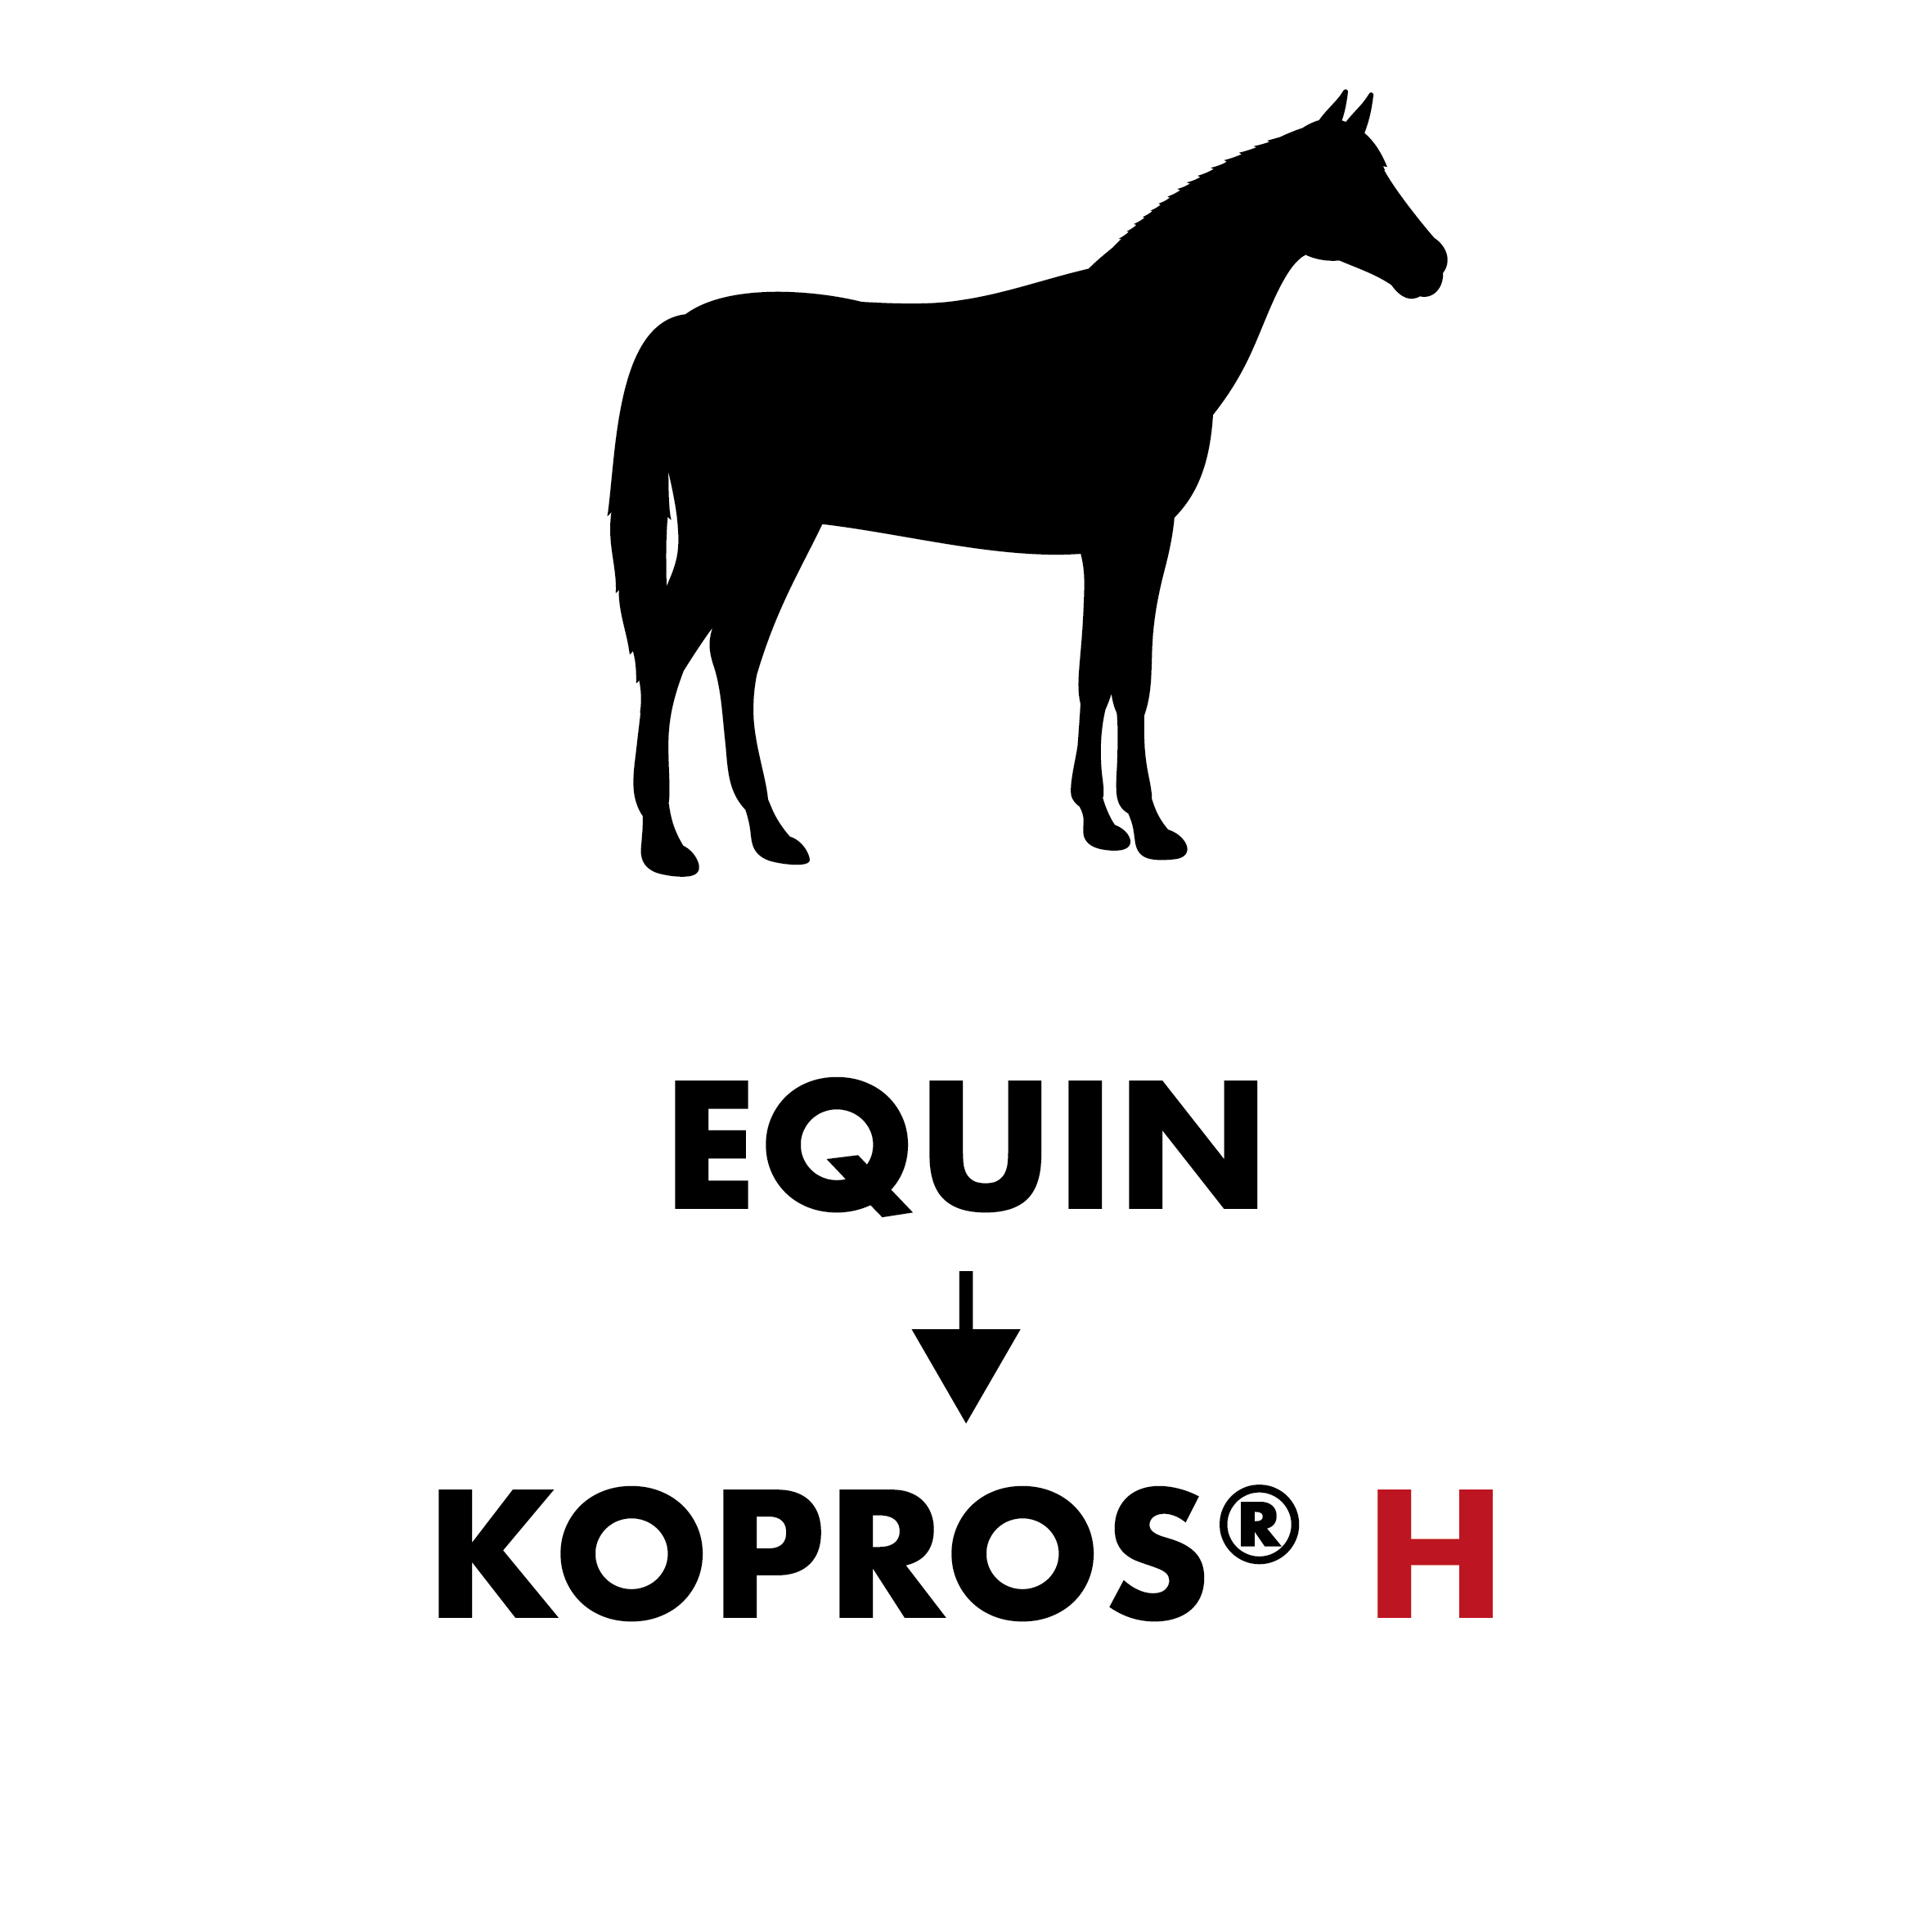 Equin